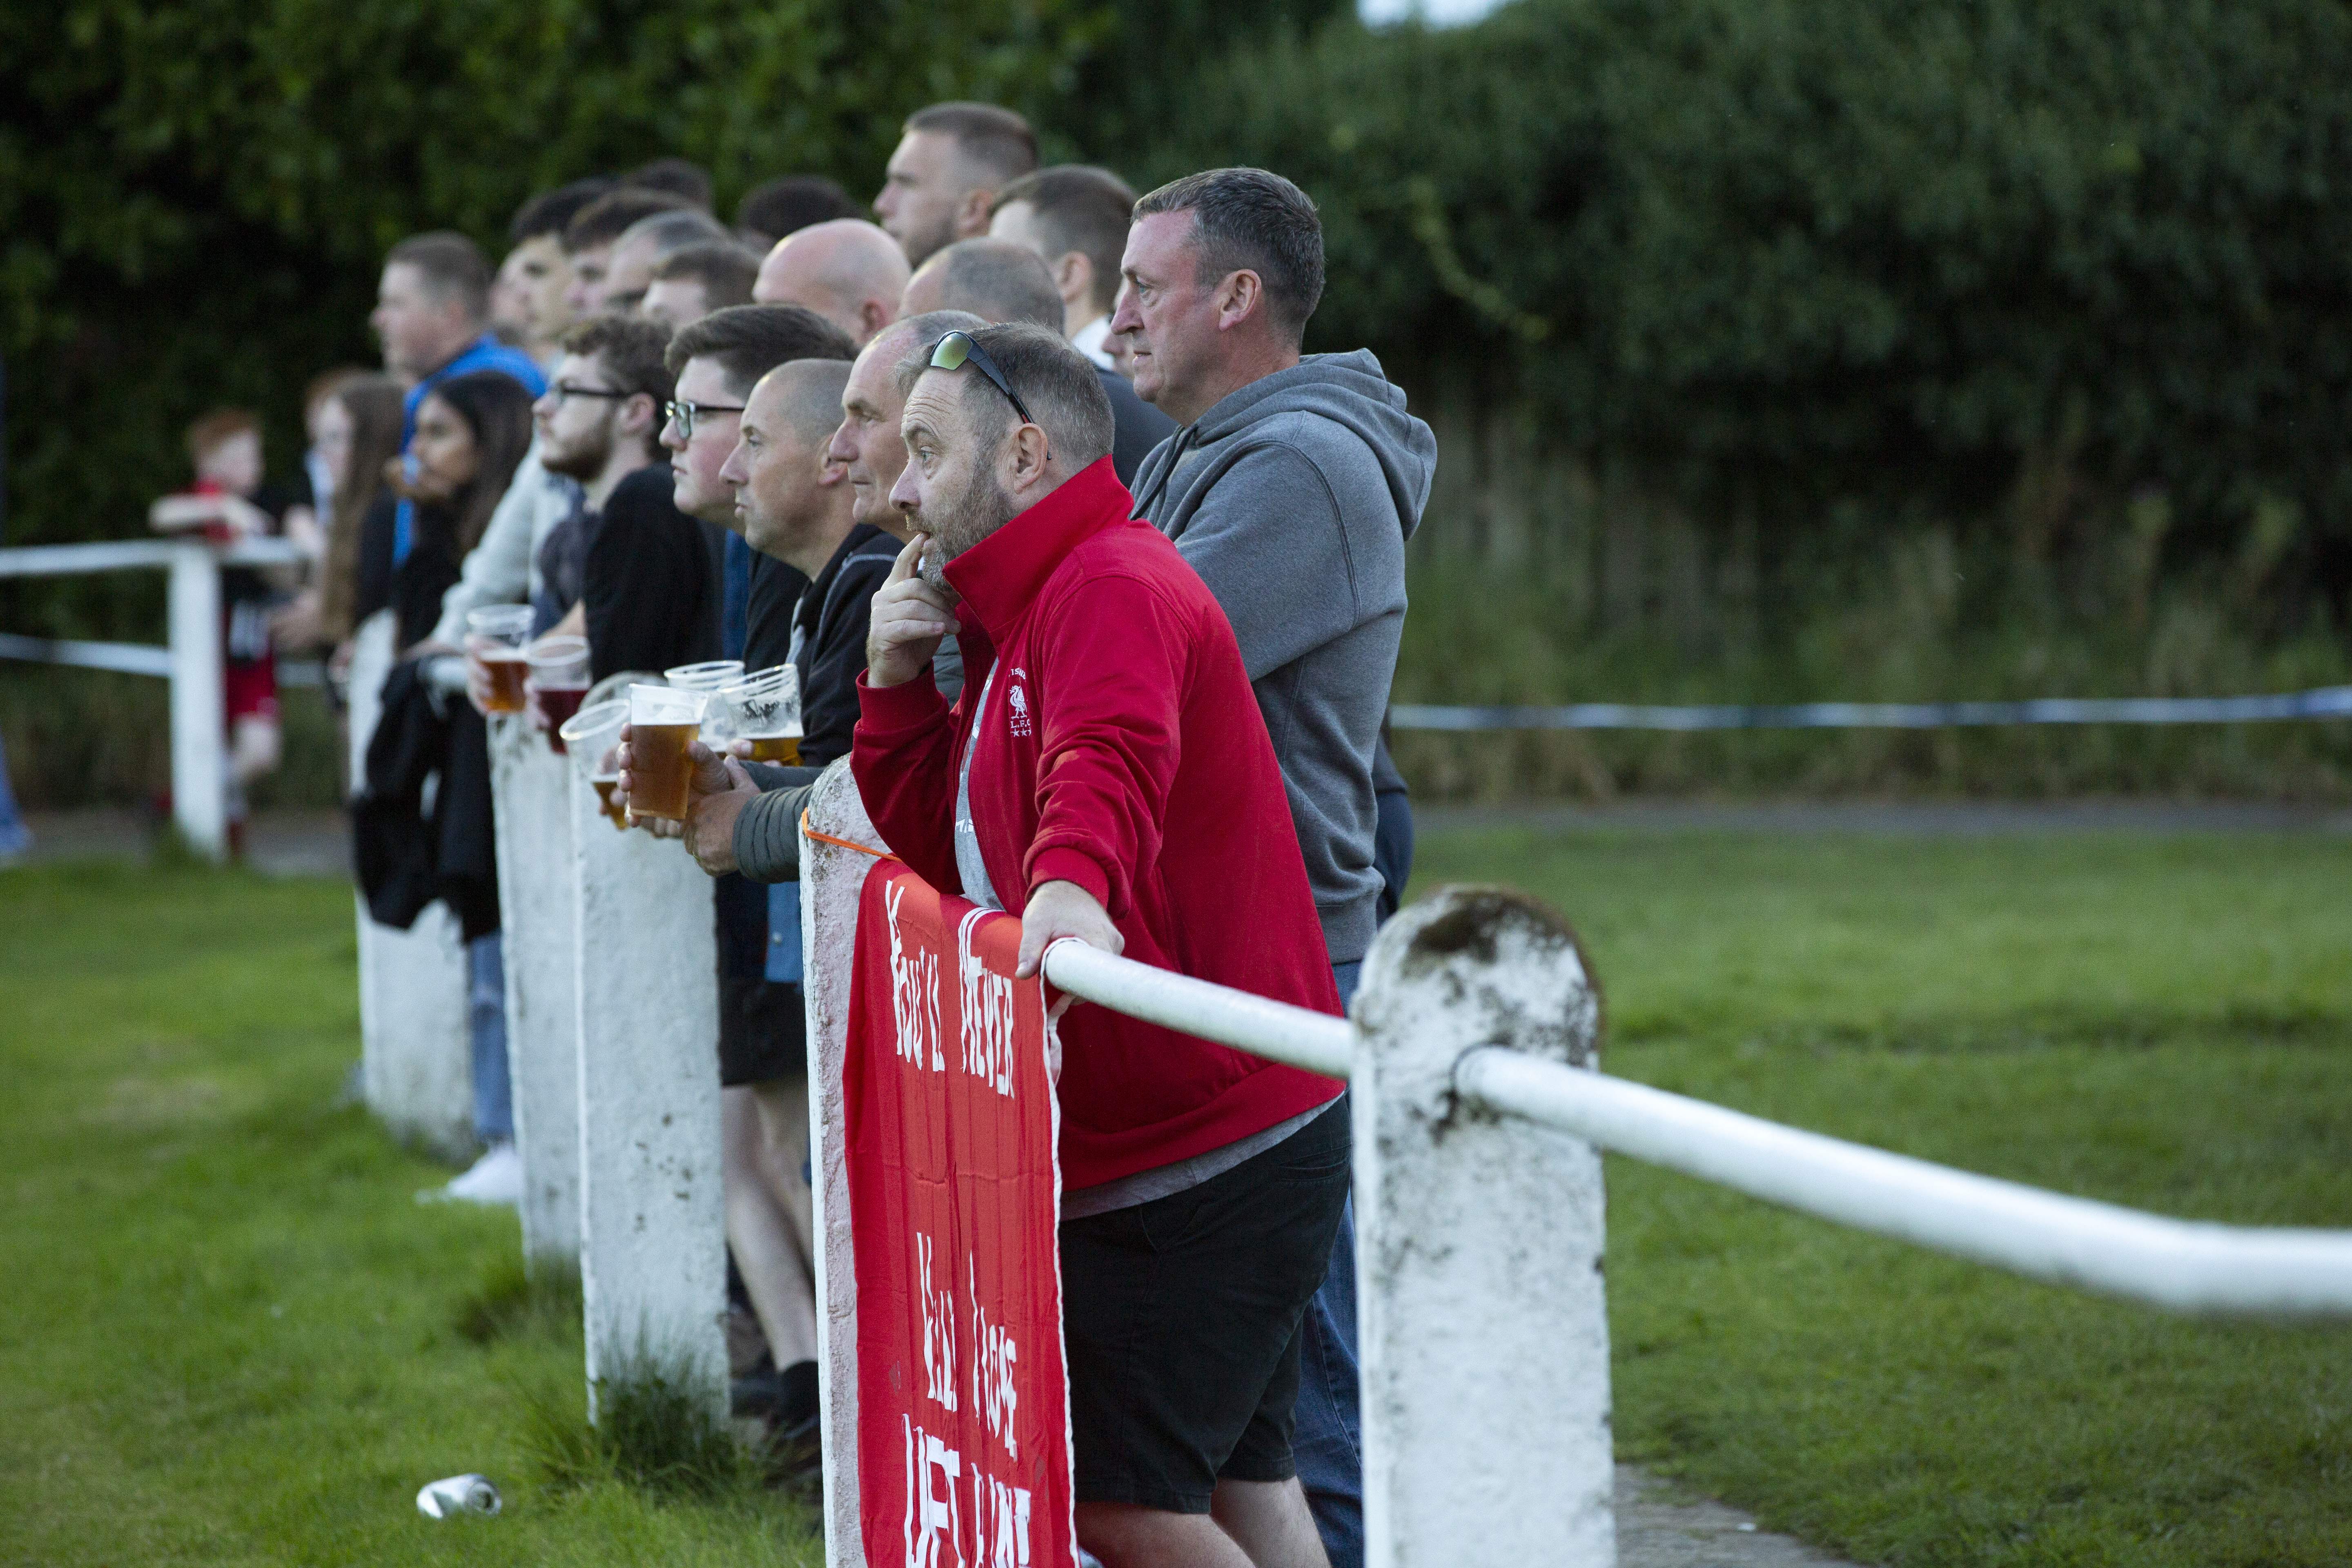 Spectators standing at the perimeter fence during the Extra Preliminary Round between Daisy Hill and Colne - New Sirs, Westhoughton - FA Cup